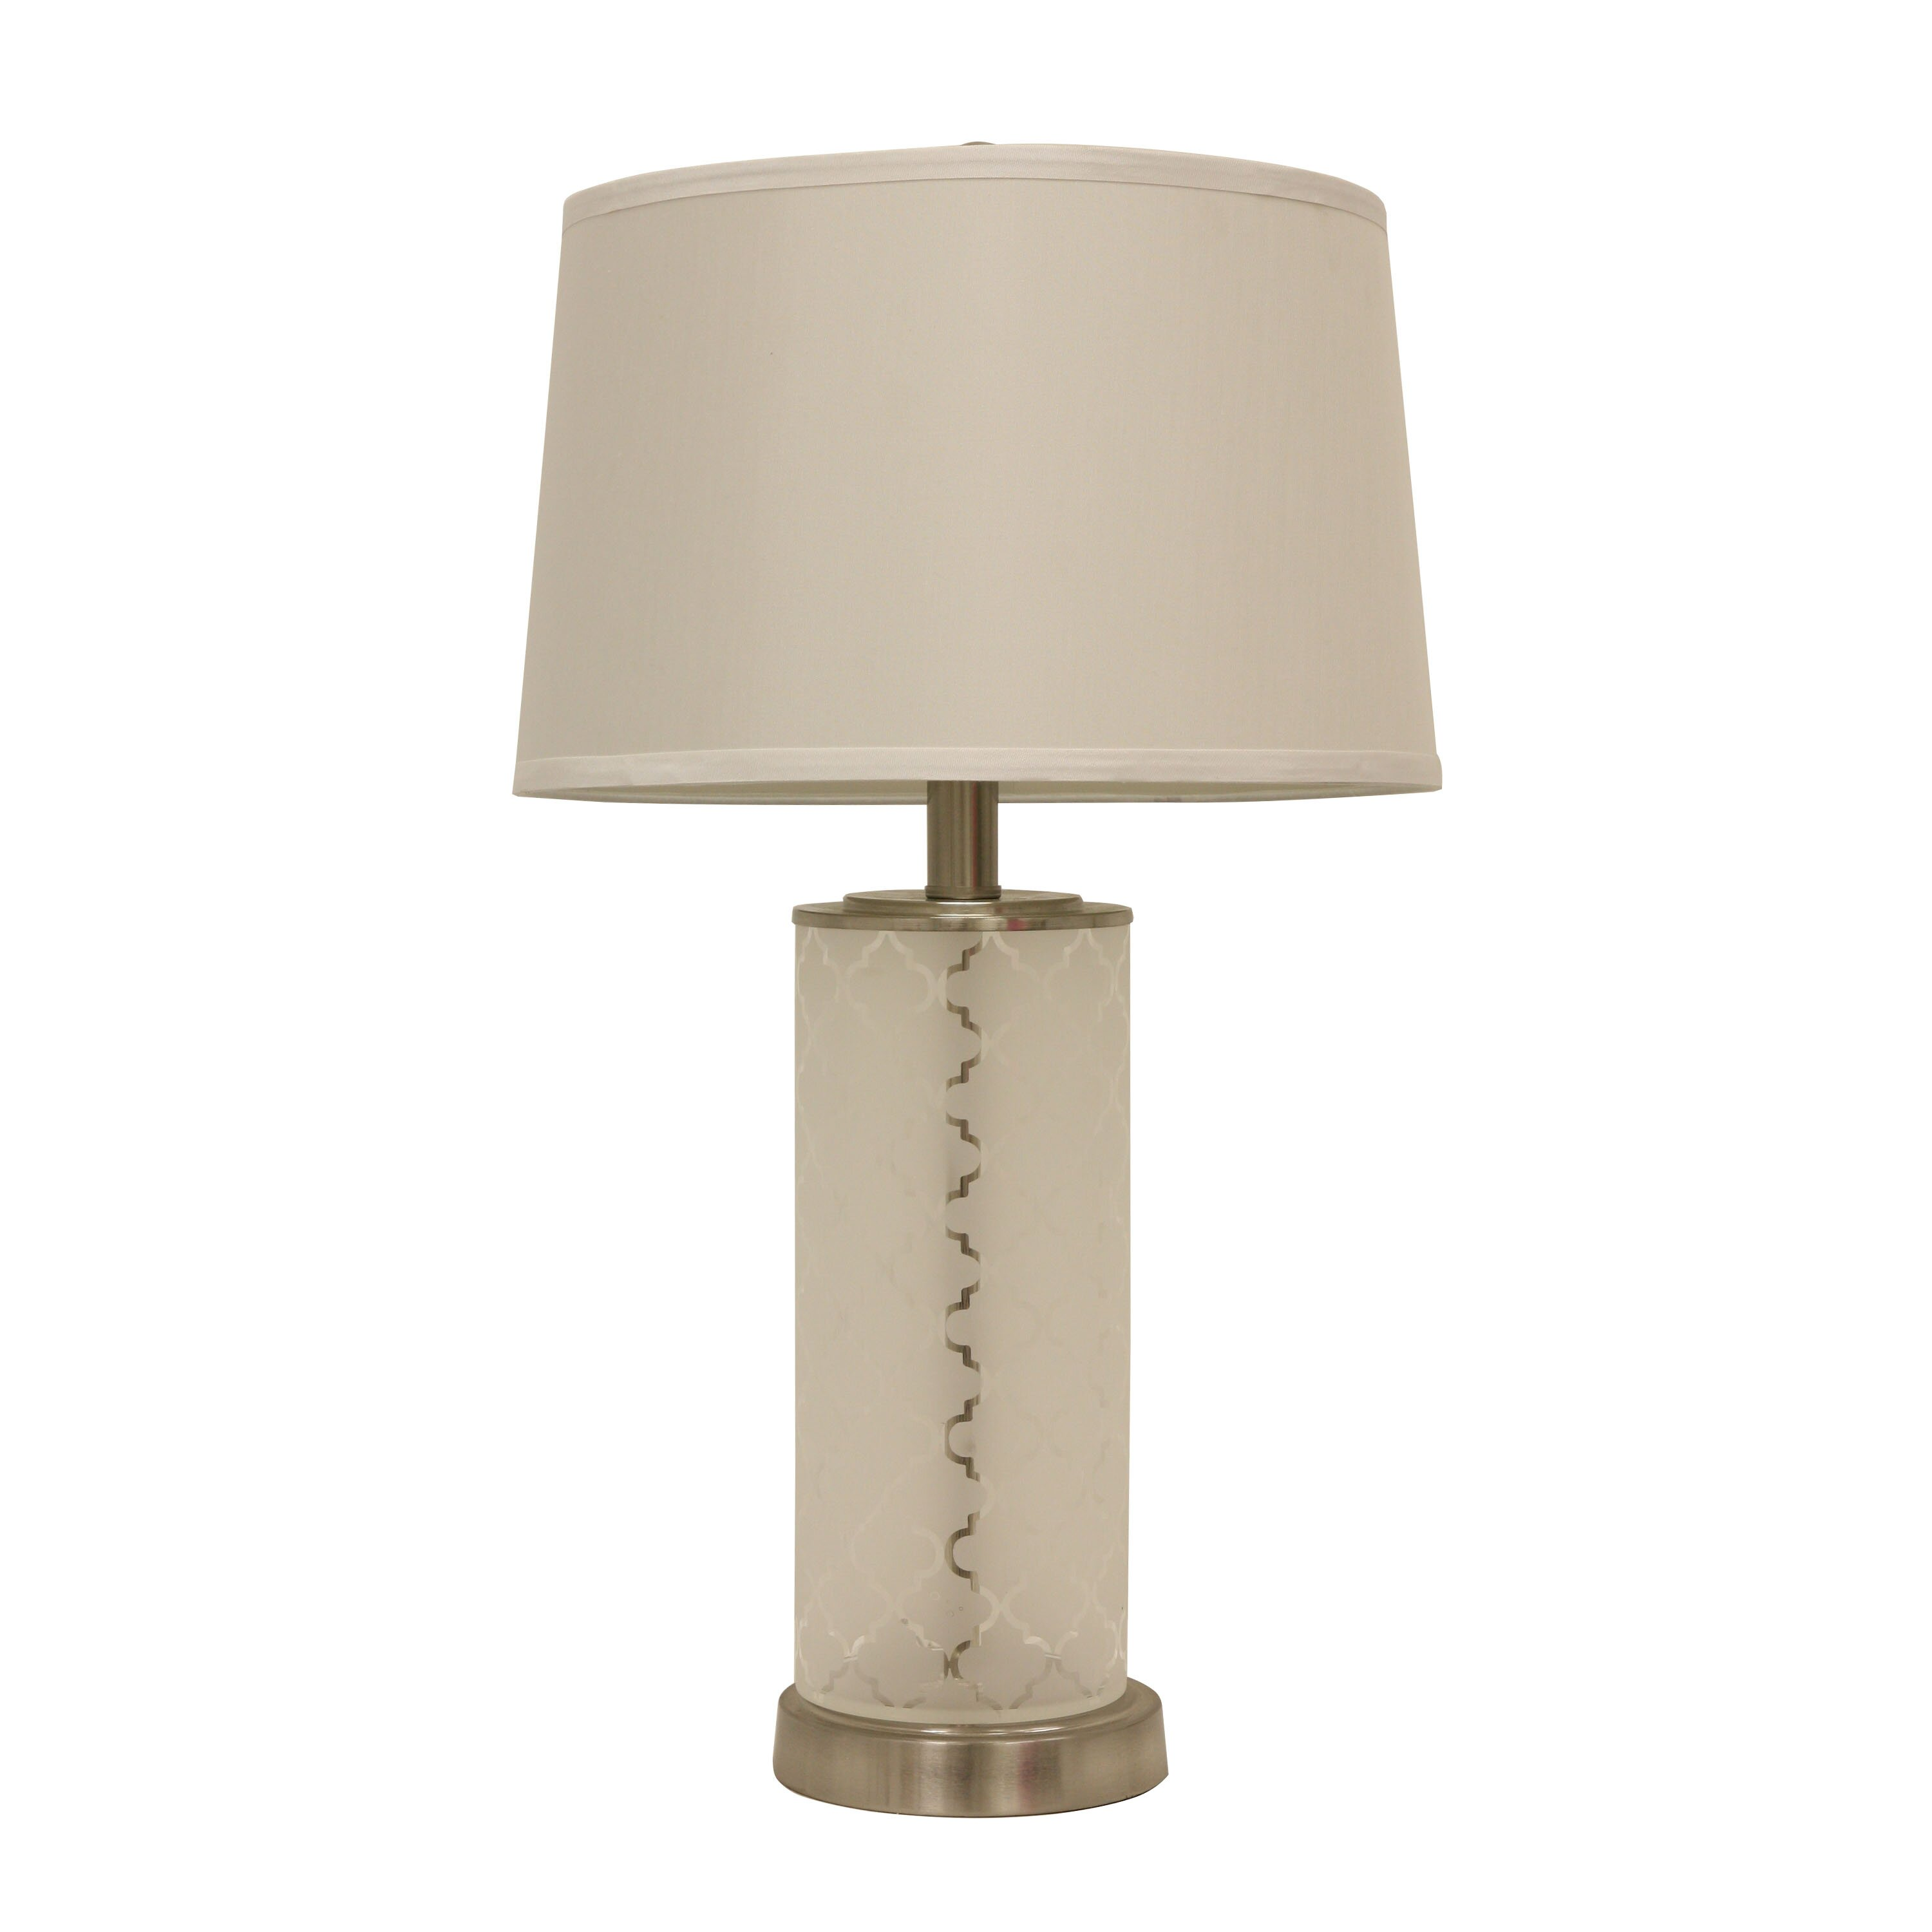 decor therapy quadrafoil etched glass 28 5 table lamp with drum shade. Black Bedroom Furniture Sets. Home Design Ideas